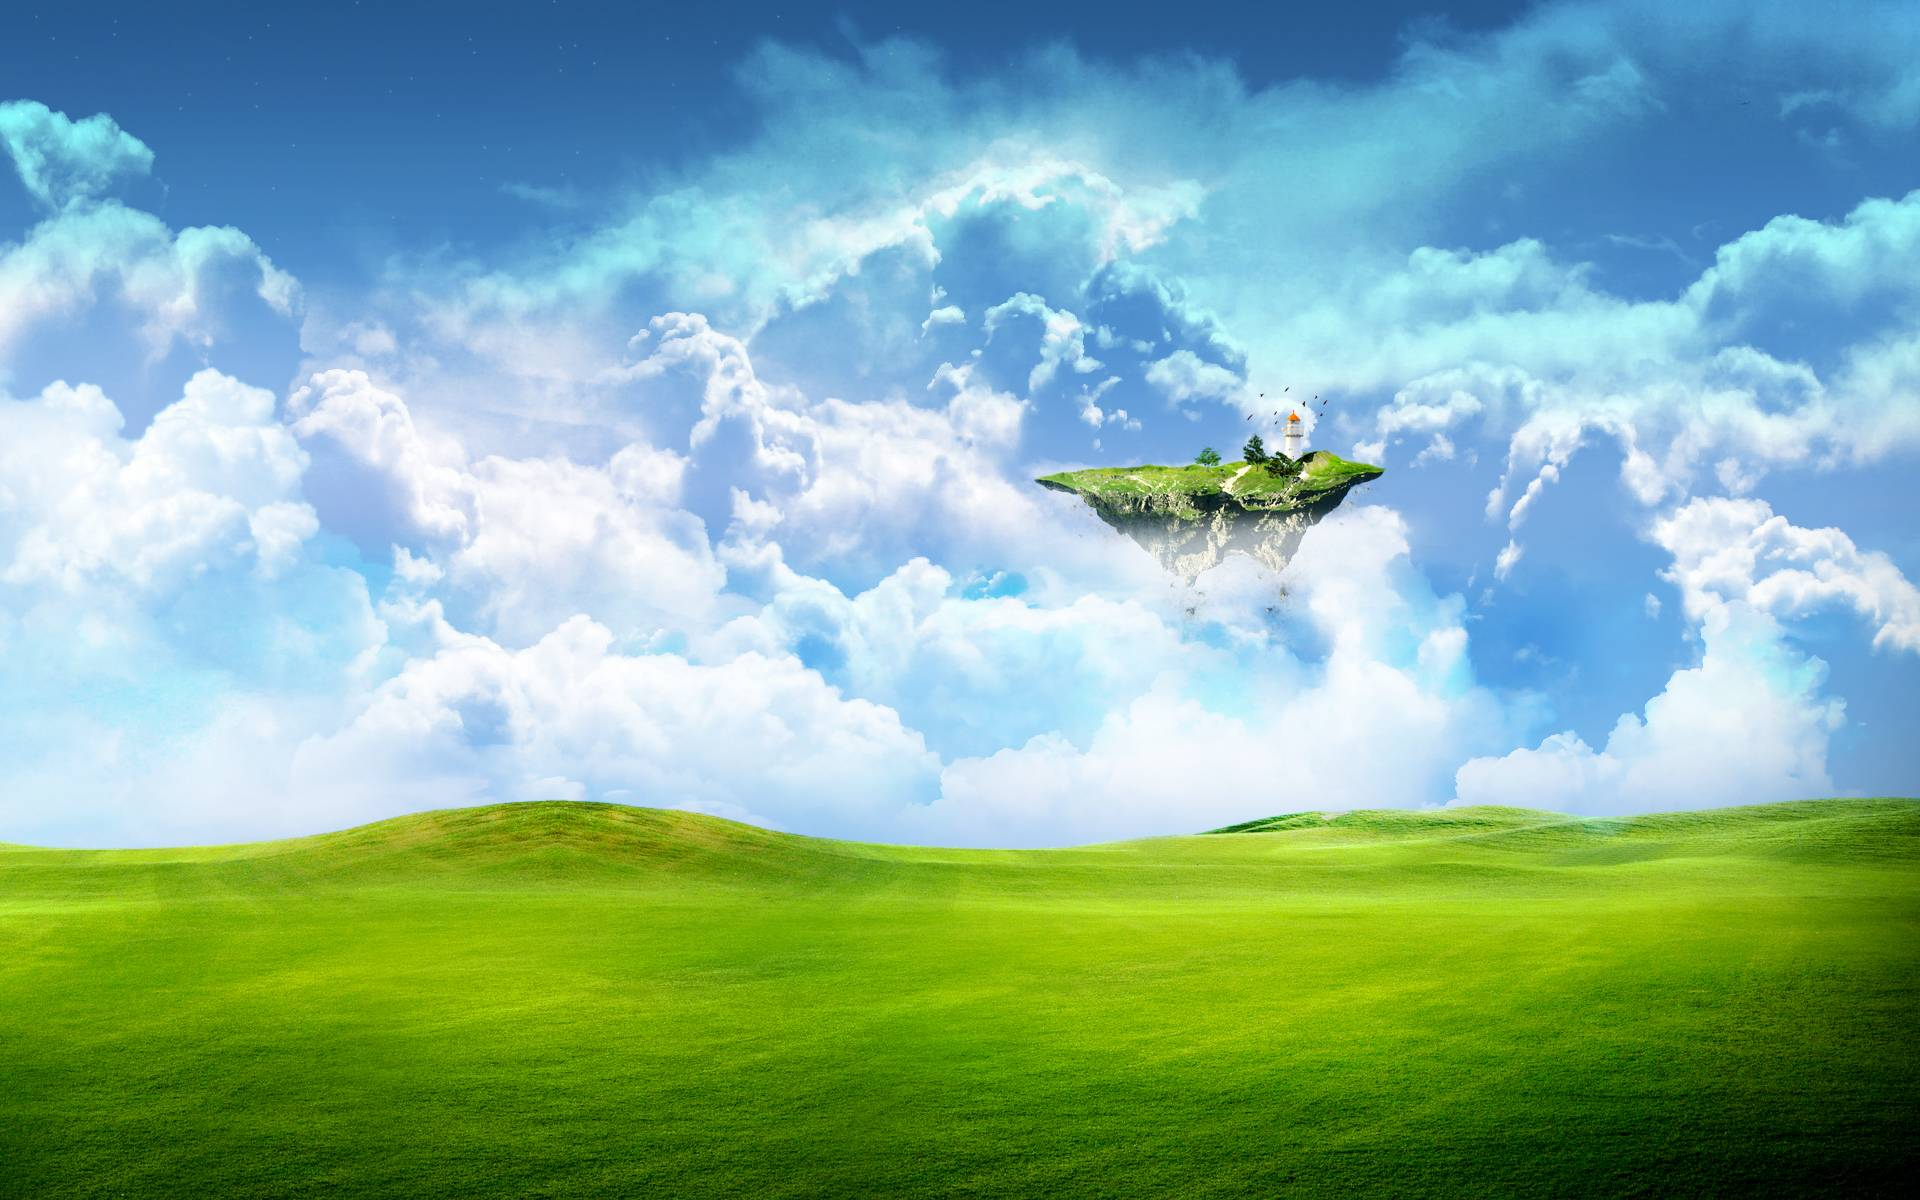 nature sky images hd download